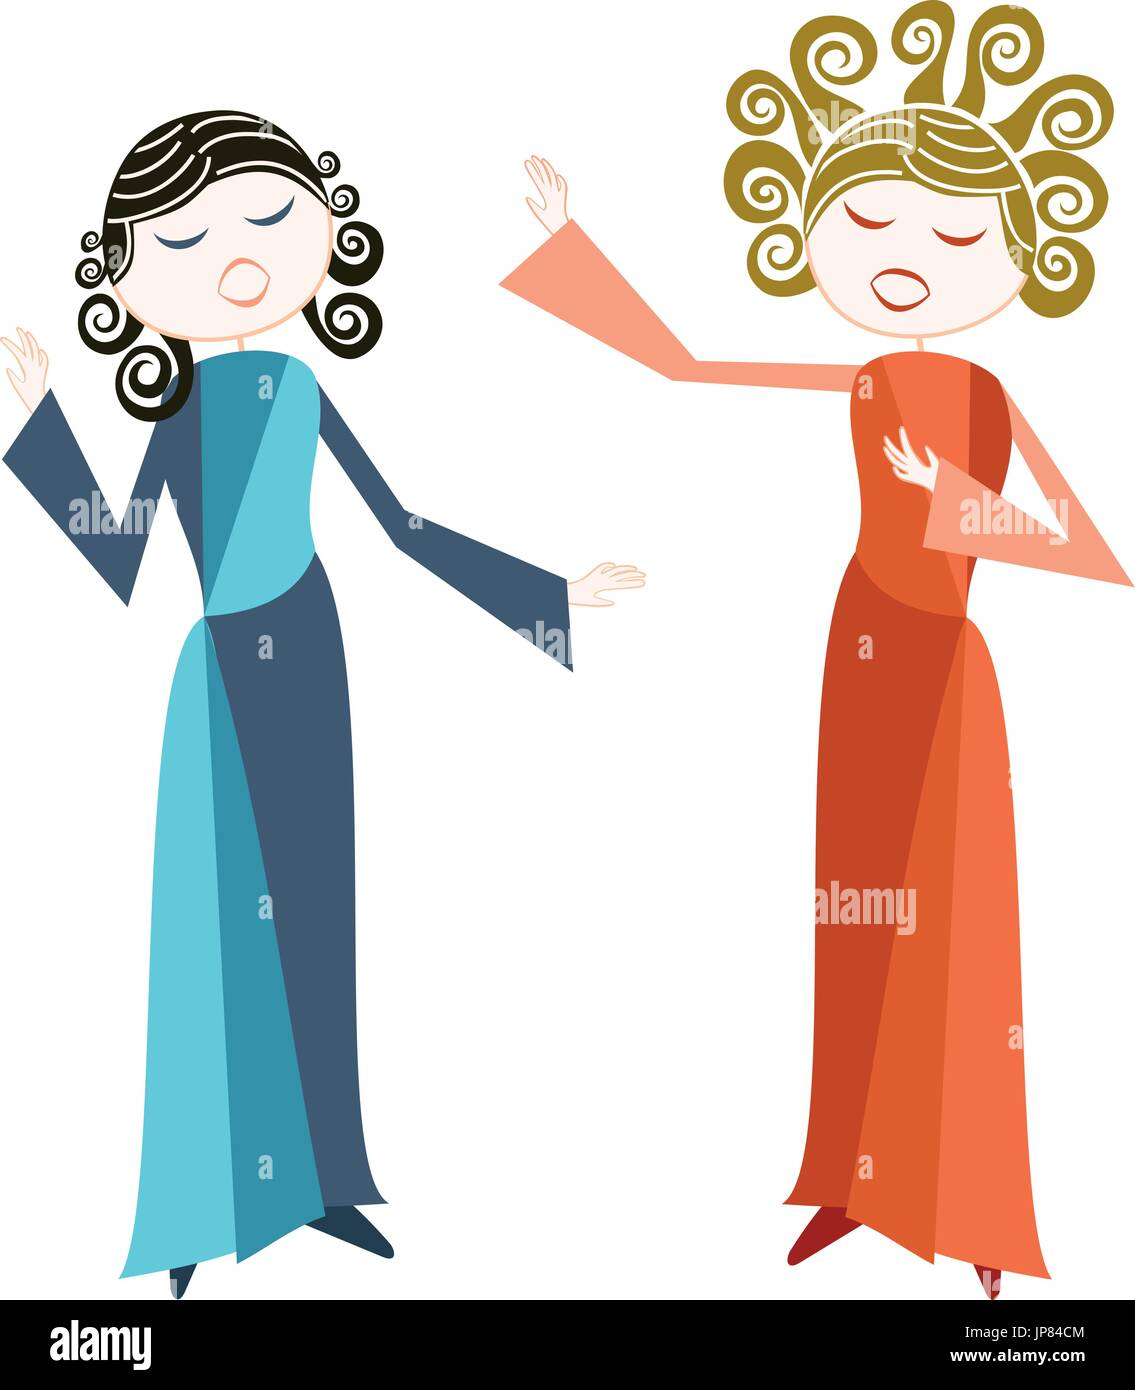 Anglais Français Two women sings with passion, opera or other more classical style - Stock Vector